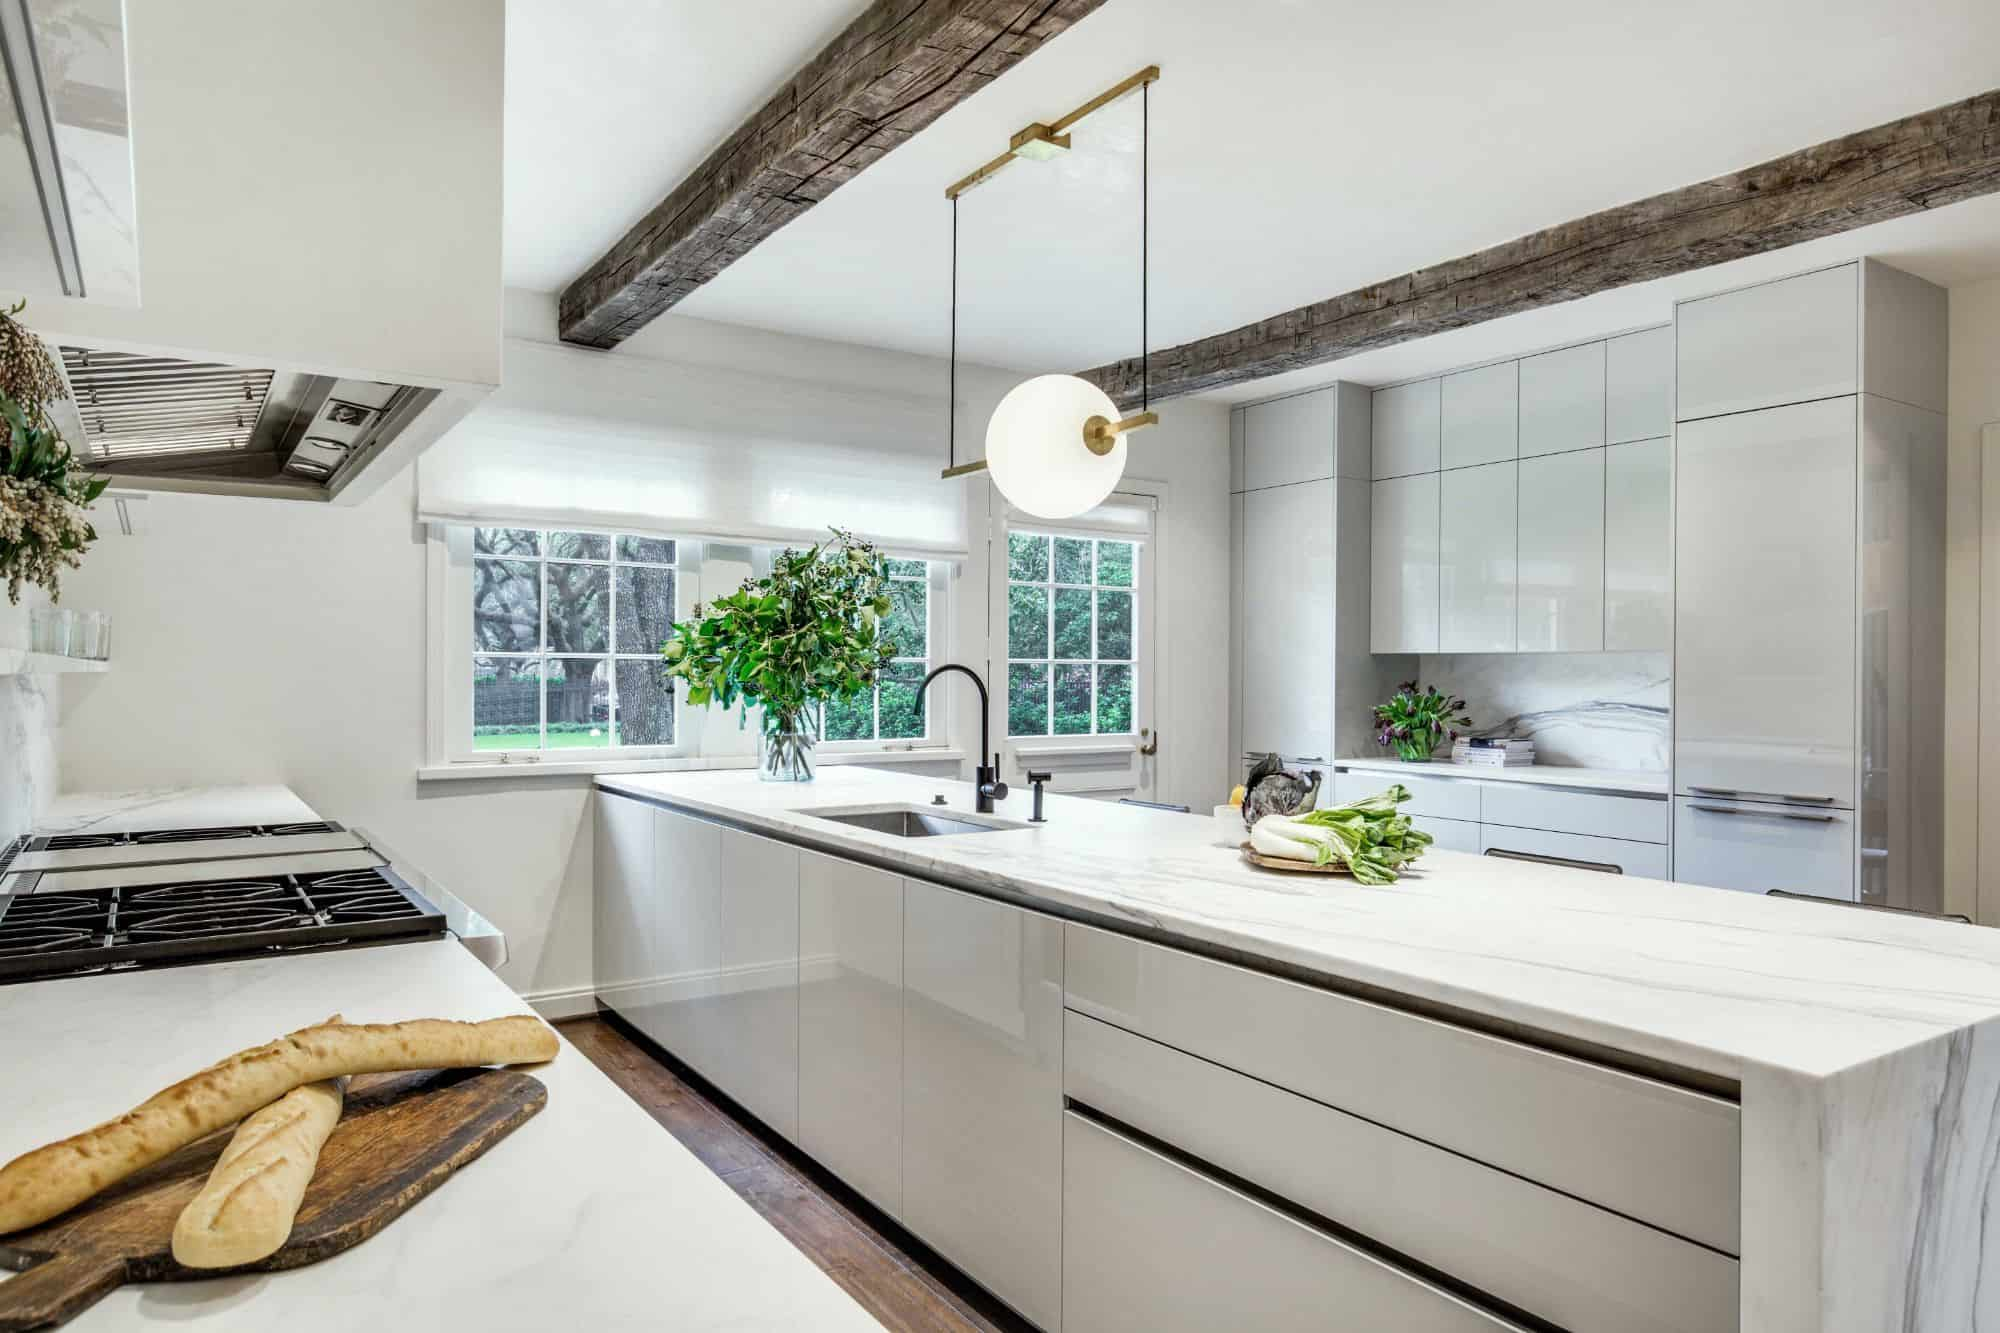 Green plants like these in this luxury stone kitchen add a natural feel that boosts your creativity